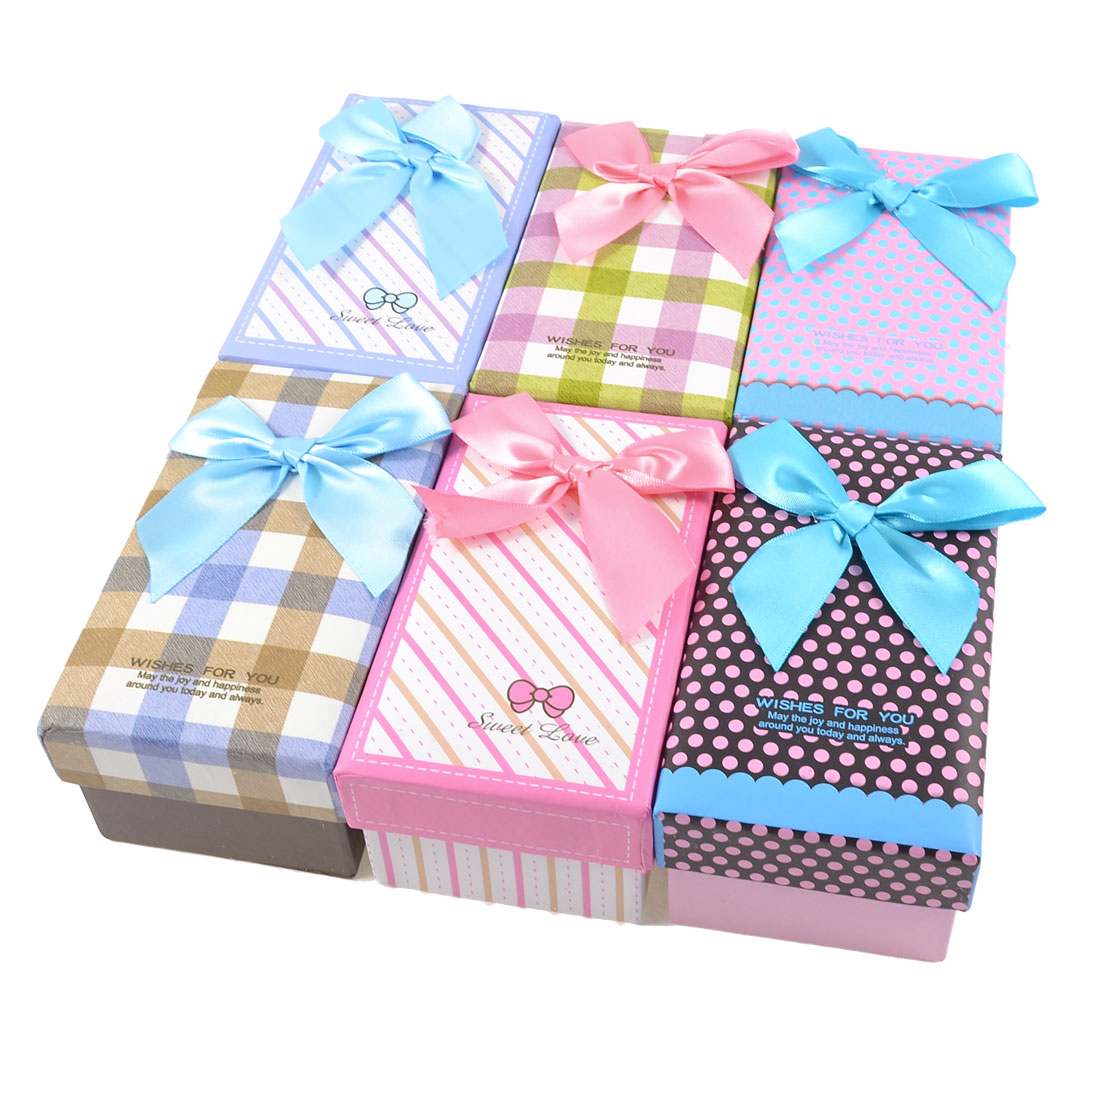 6 Pcs Bowtie Accent Rectangle Design Cardboard Gift Cases Present Boxes Assorted Color